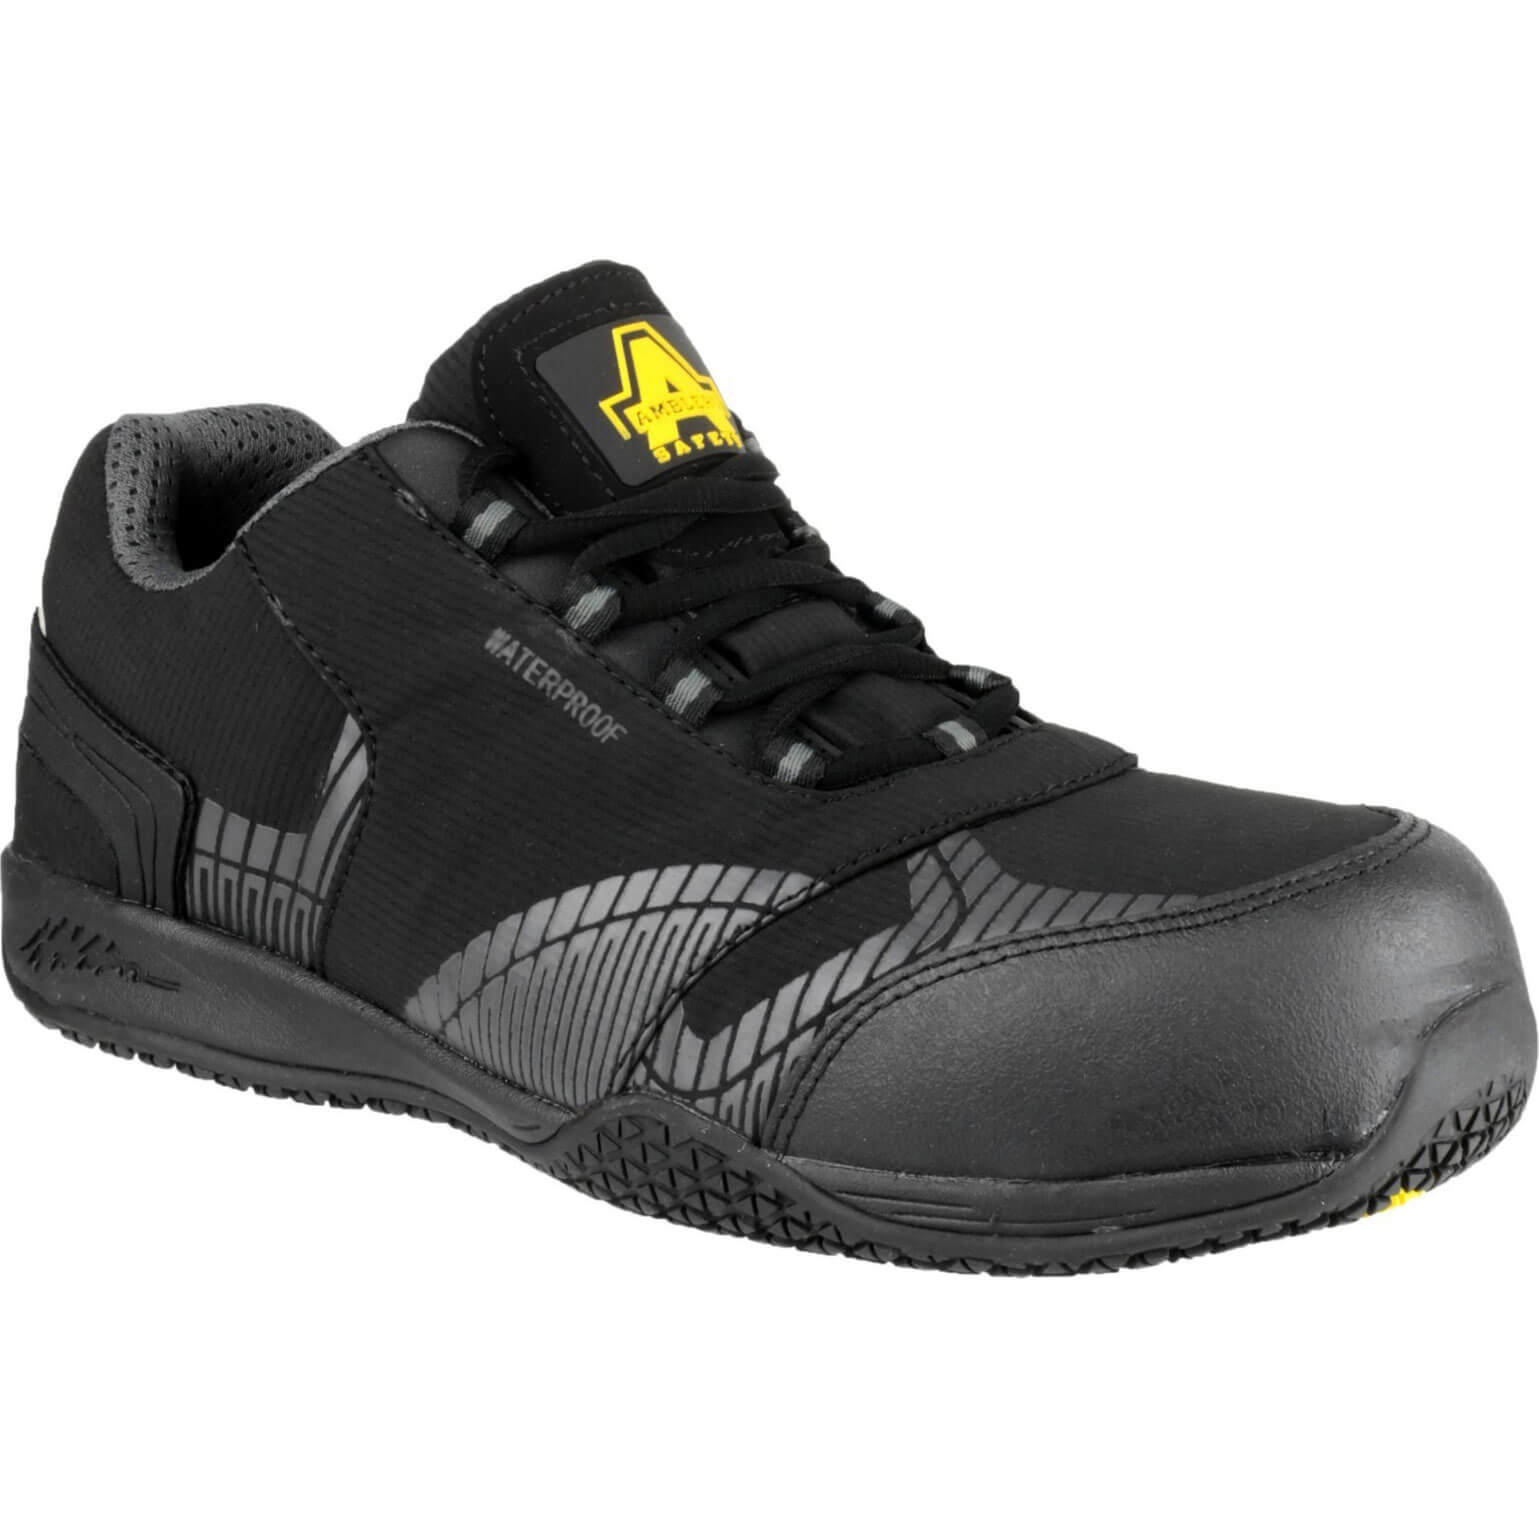 CHEAP Amblers Safety FS29C Waterproof Metal Free Non Leather Safety Trainer Black Size 10 – Men's Footwear